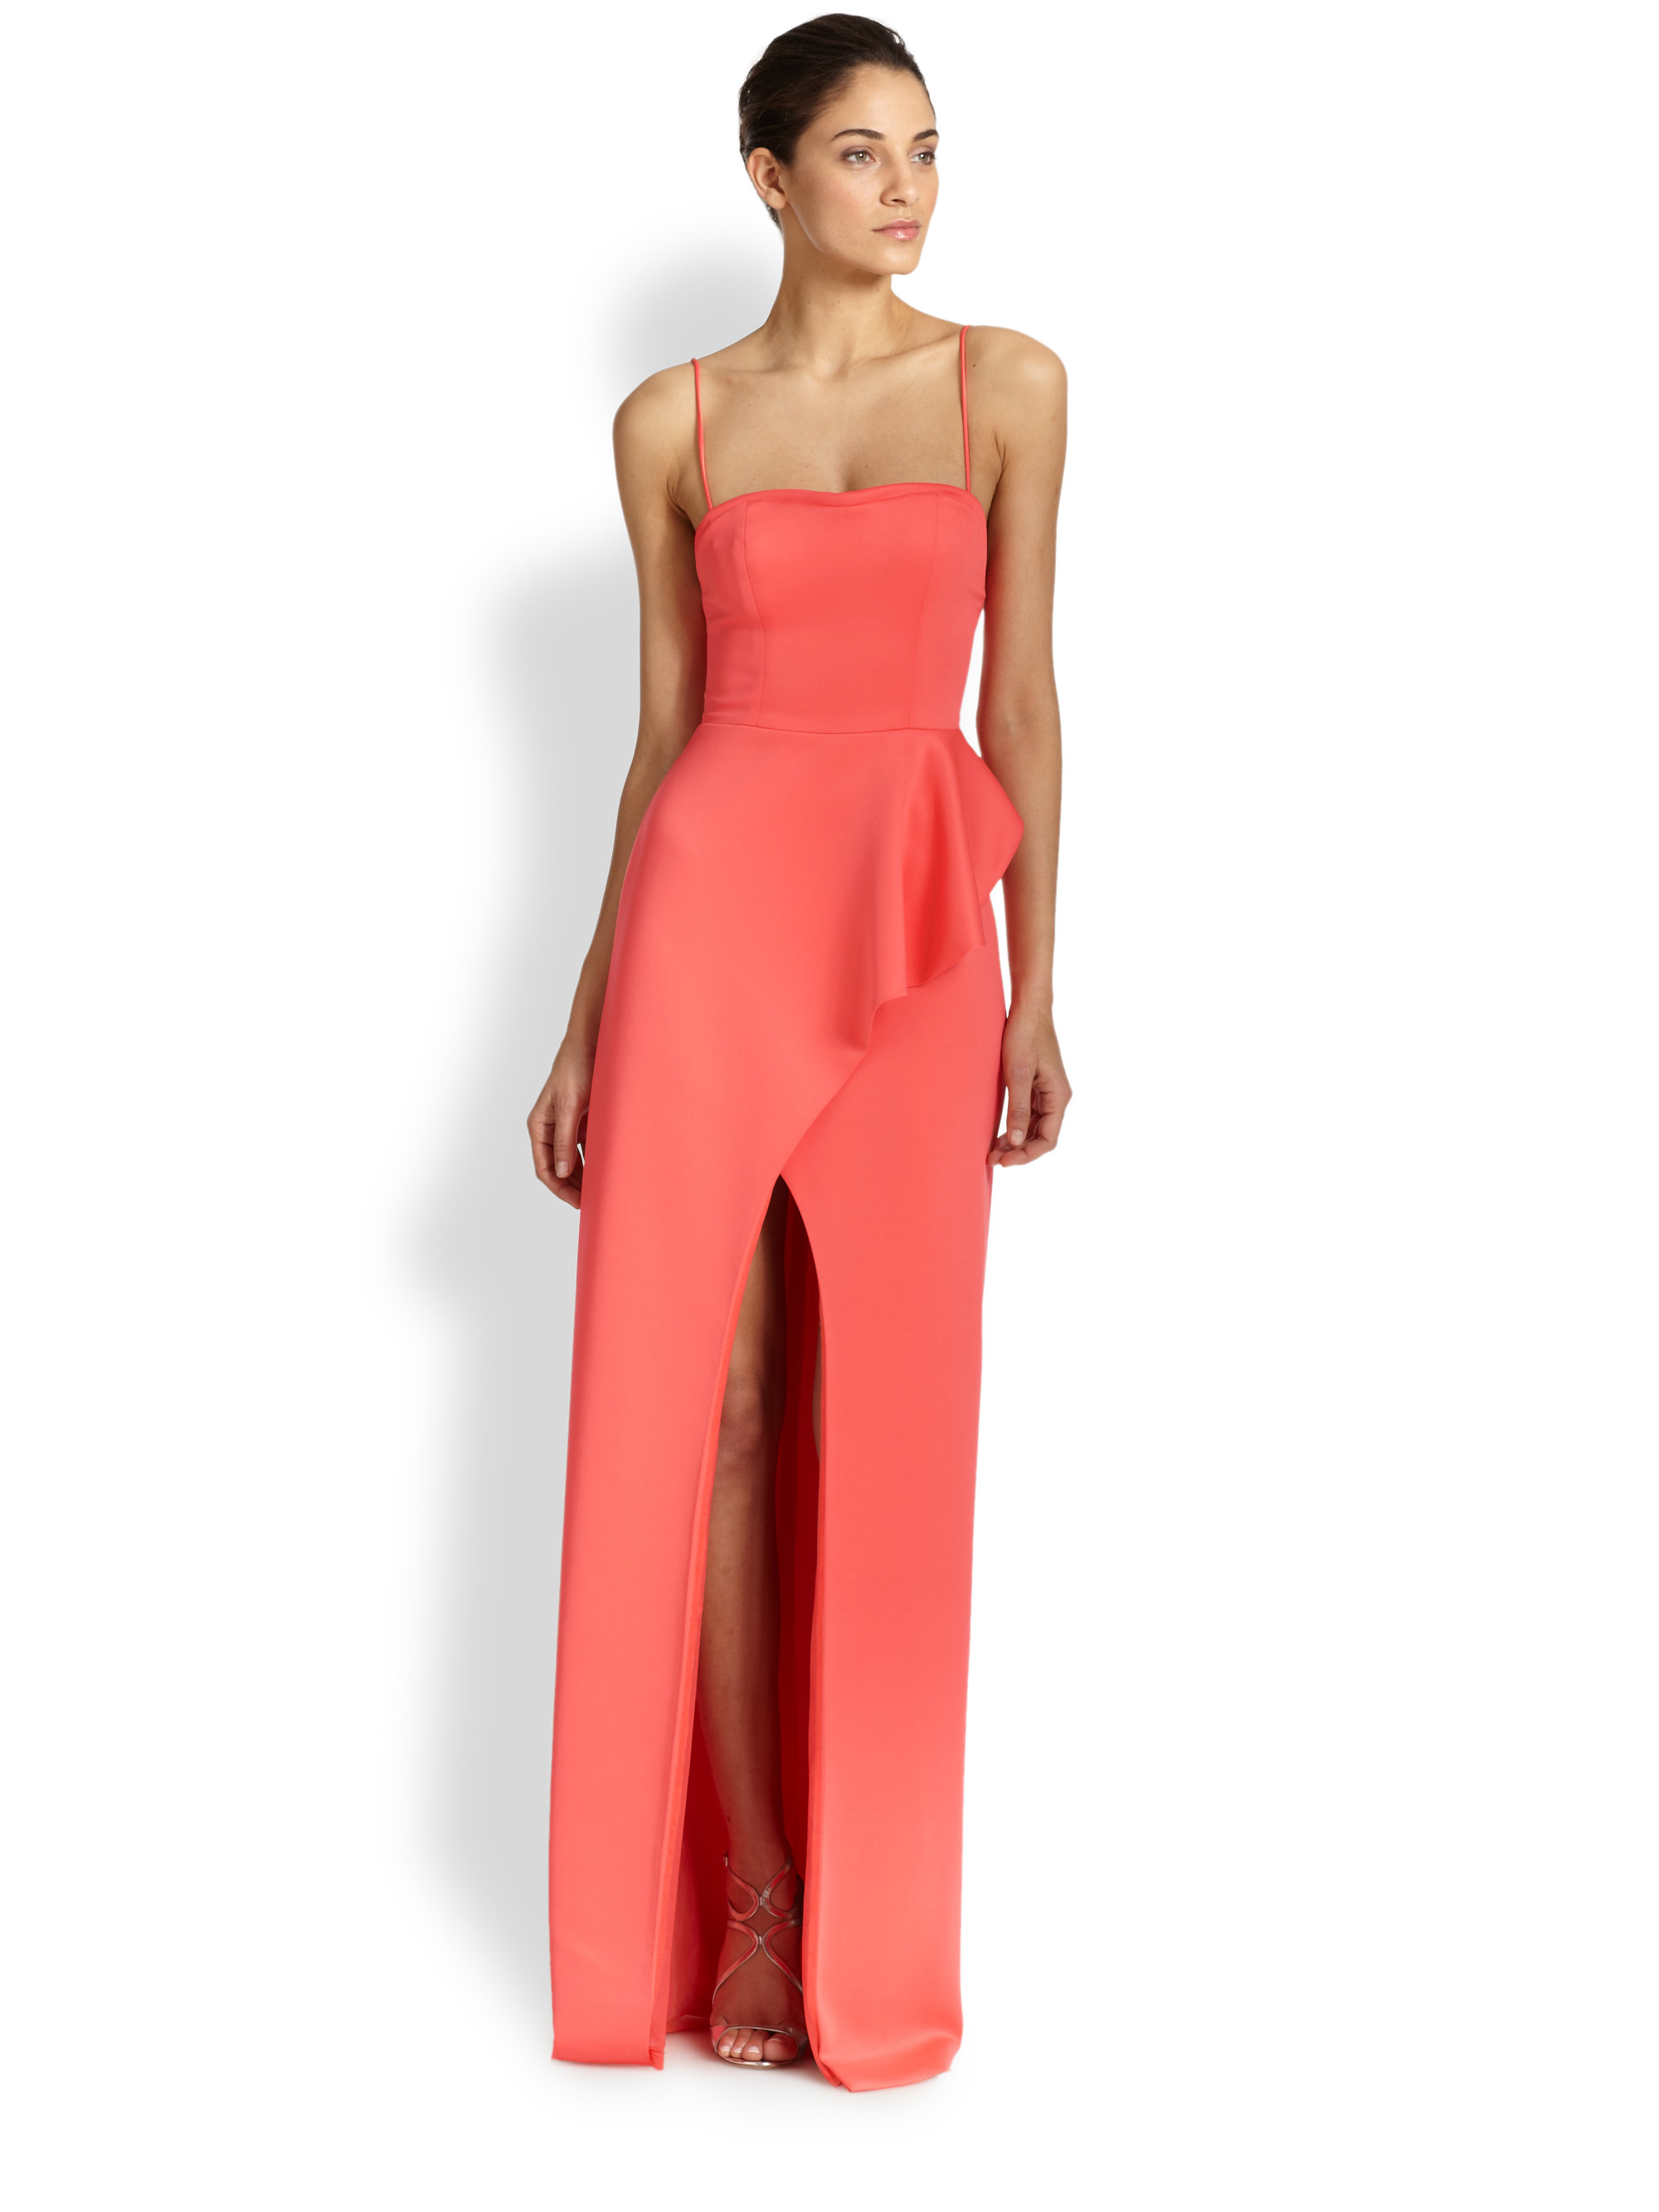 Lyst - Black Halo Eminence Gown in Red